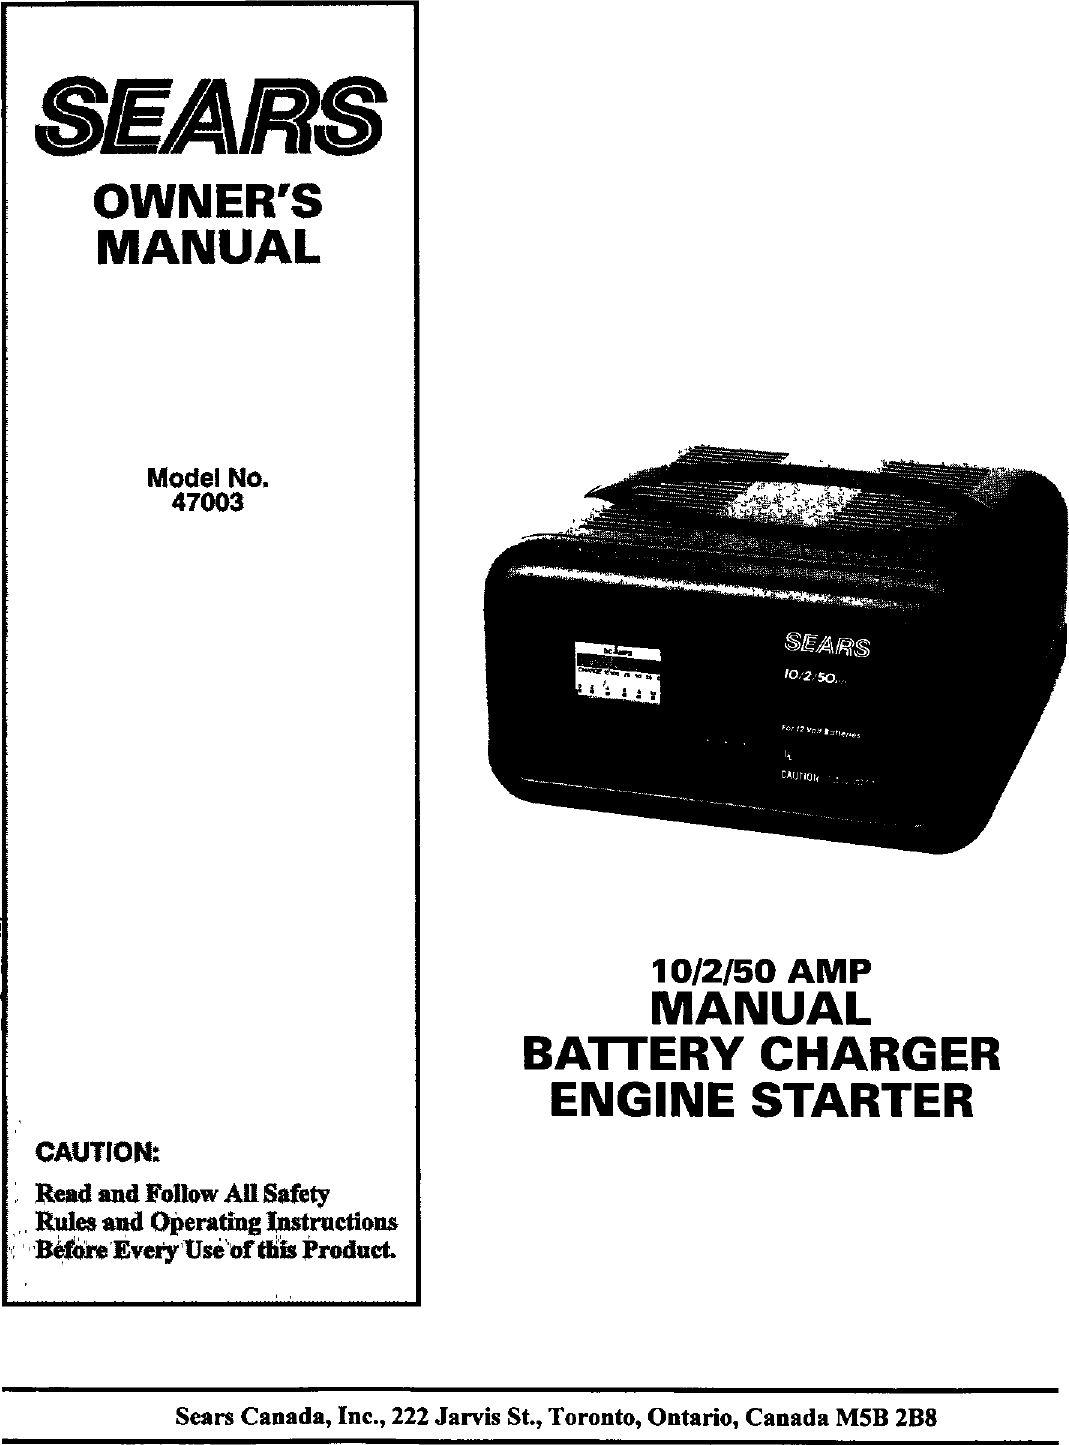 Sears 20047003 User Manual BATTERY CHARGER Manuals And